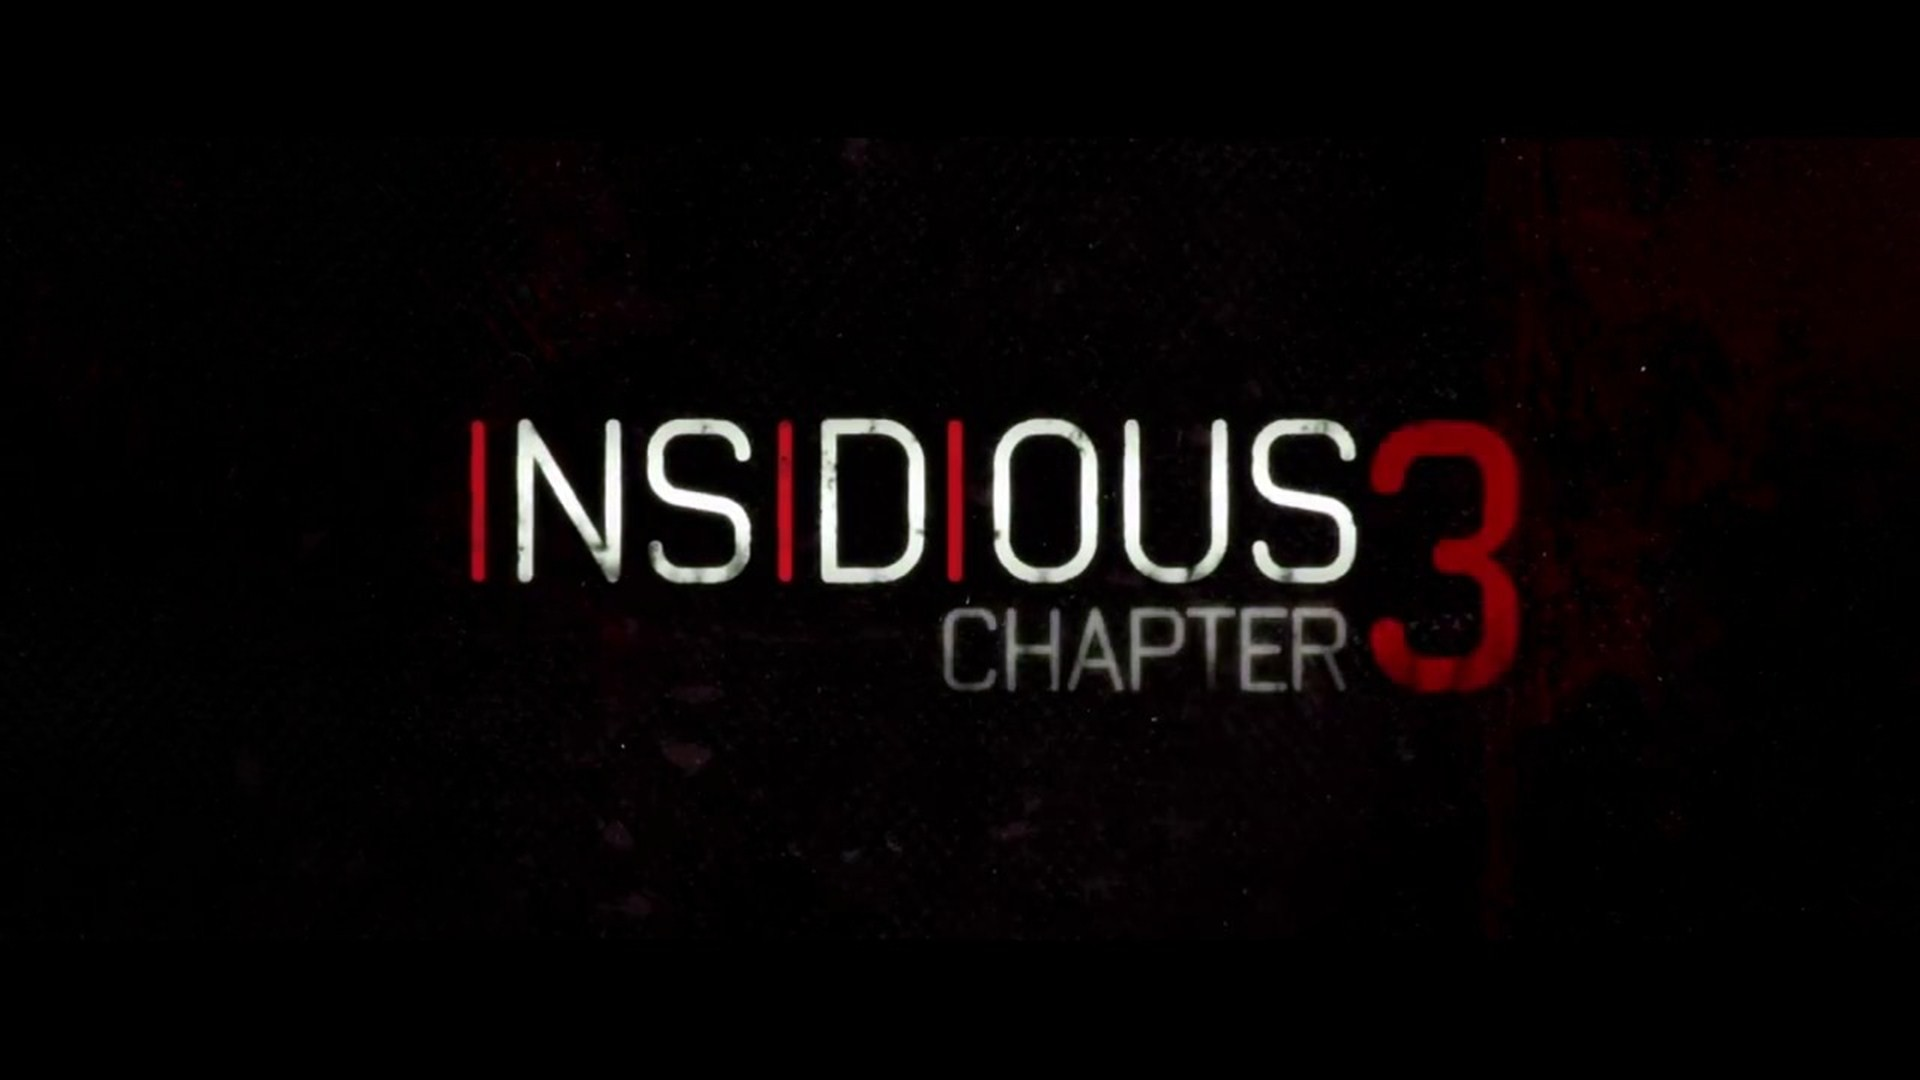 Photo of Recenzija filma INSIDIOUS CHAPTER 3: Kostimografija vrh! Ostatak dno.